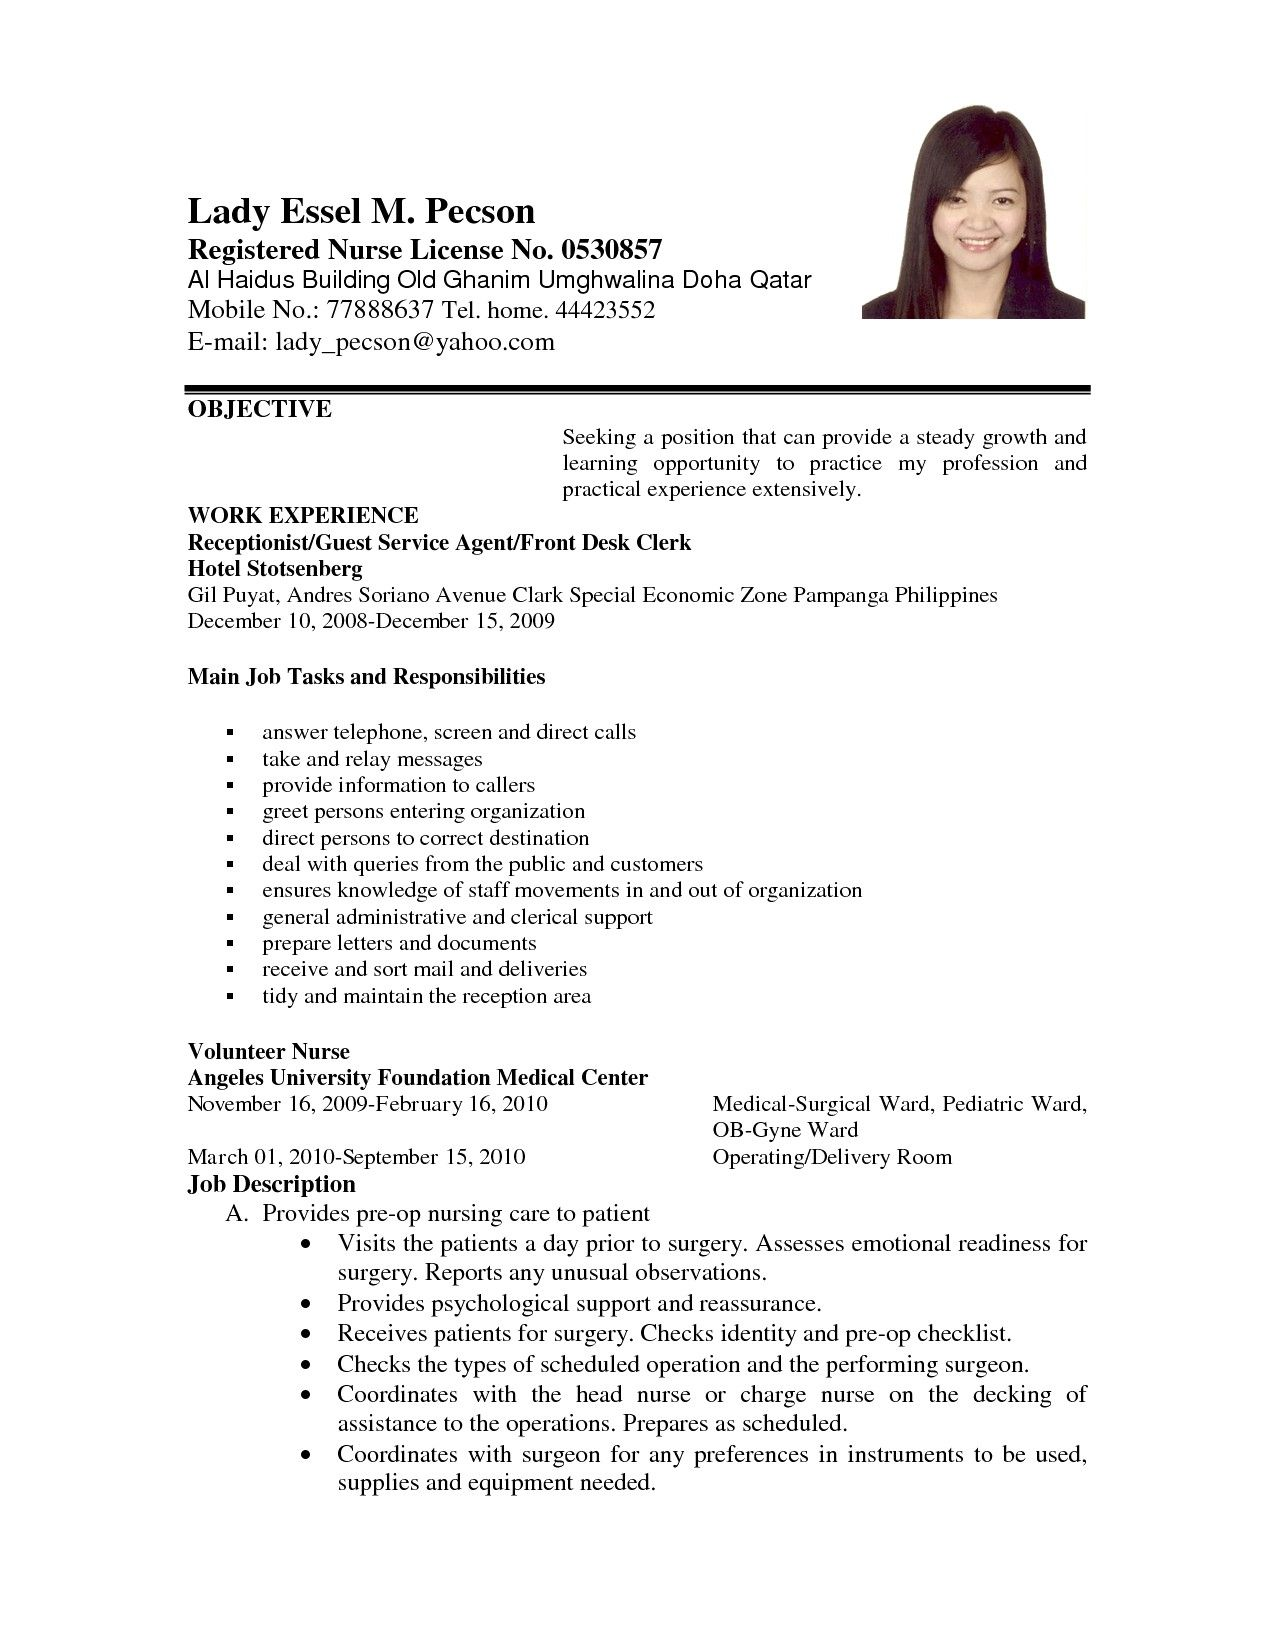 career objective resume examples awesome example applying for job of object cover letter Resume Job Resume Objective Sample